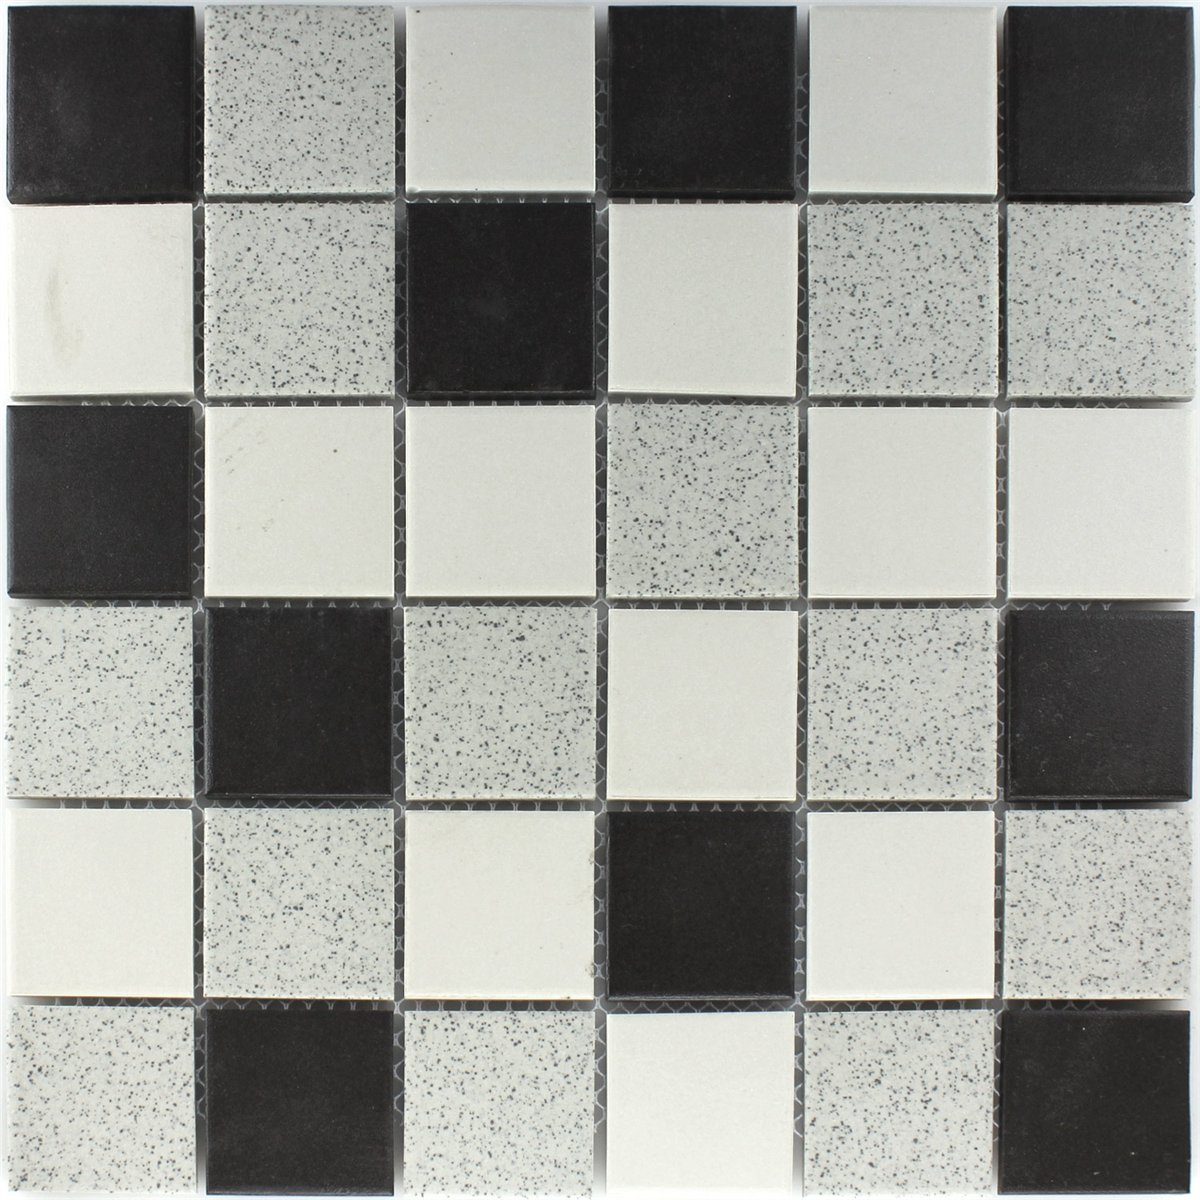 ceramic mosaic tiles backsplash black grey mat mix www. Black Bedroom Furniture Sets. Home Design Ideas